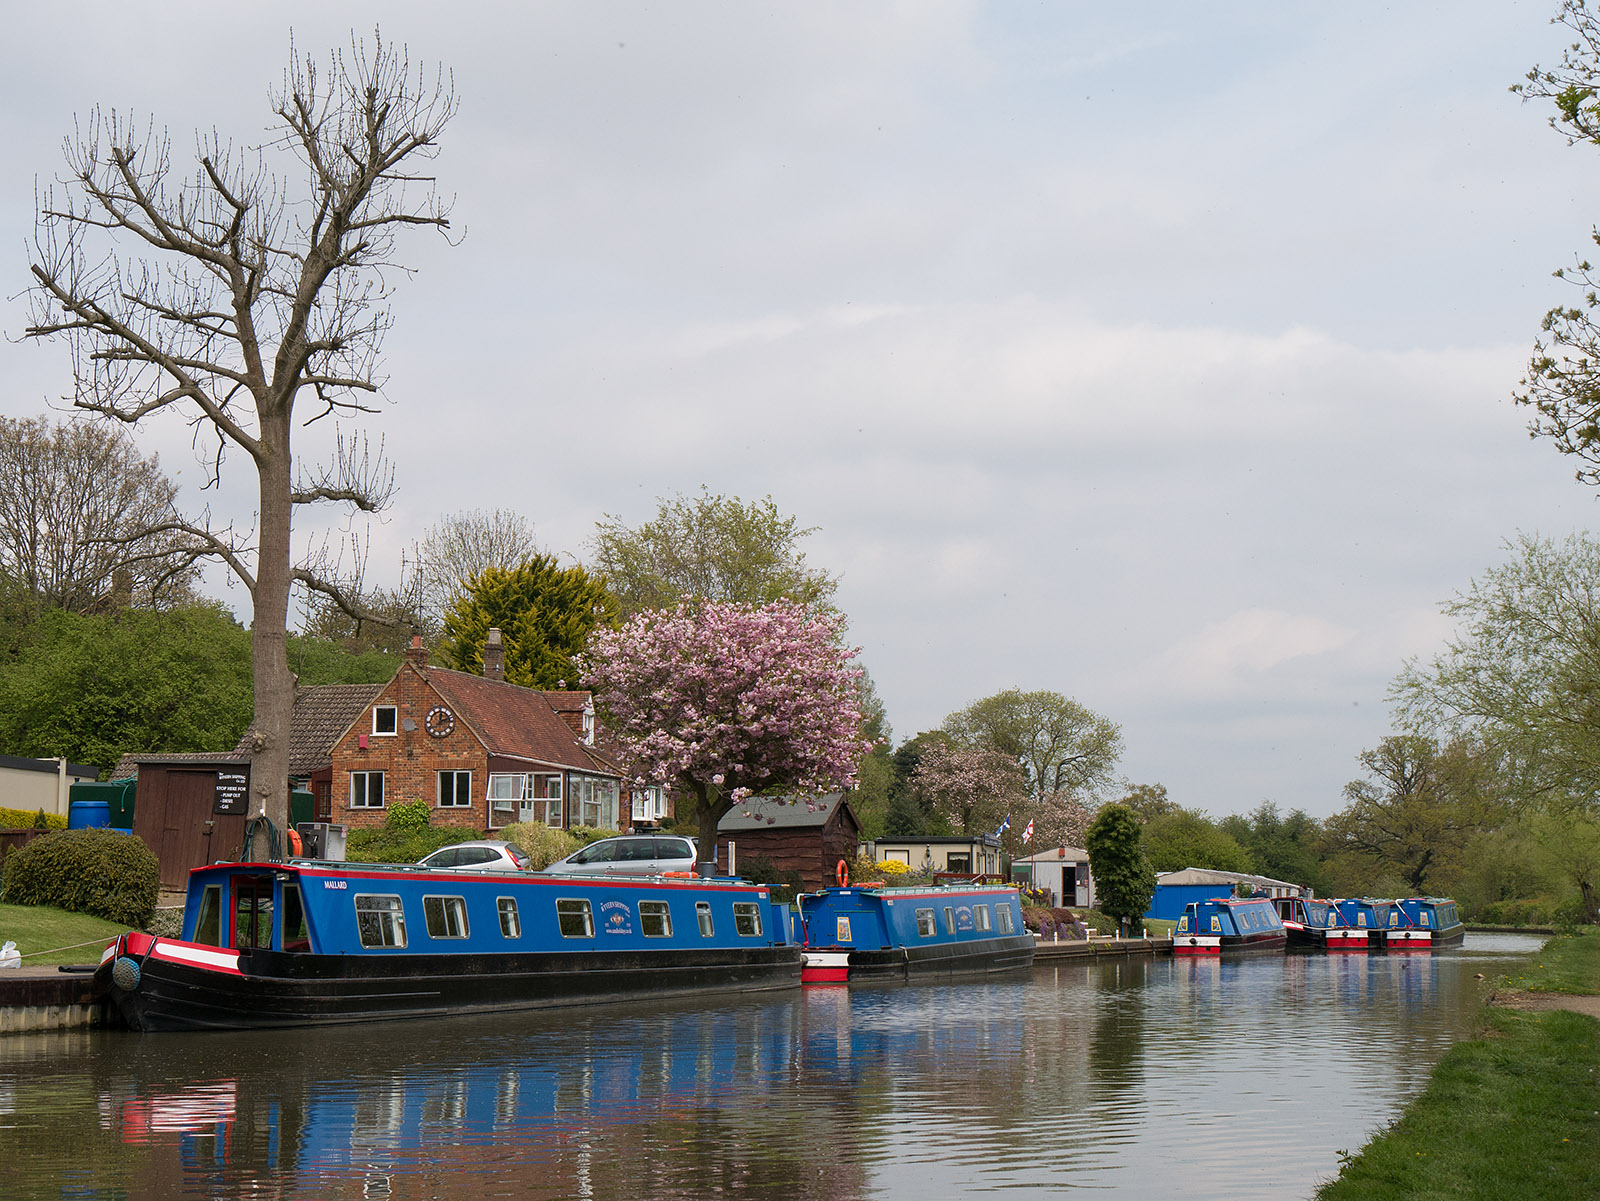 Canal boats for hire